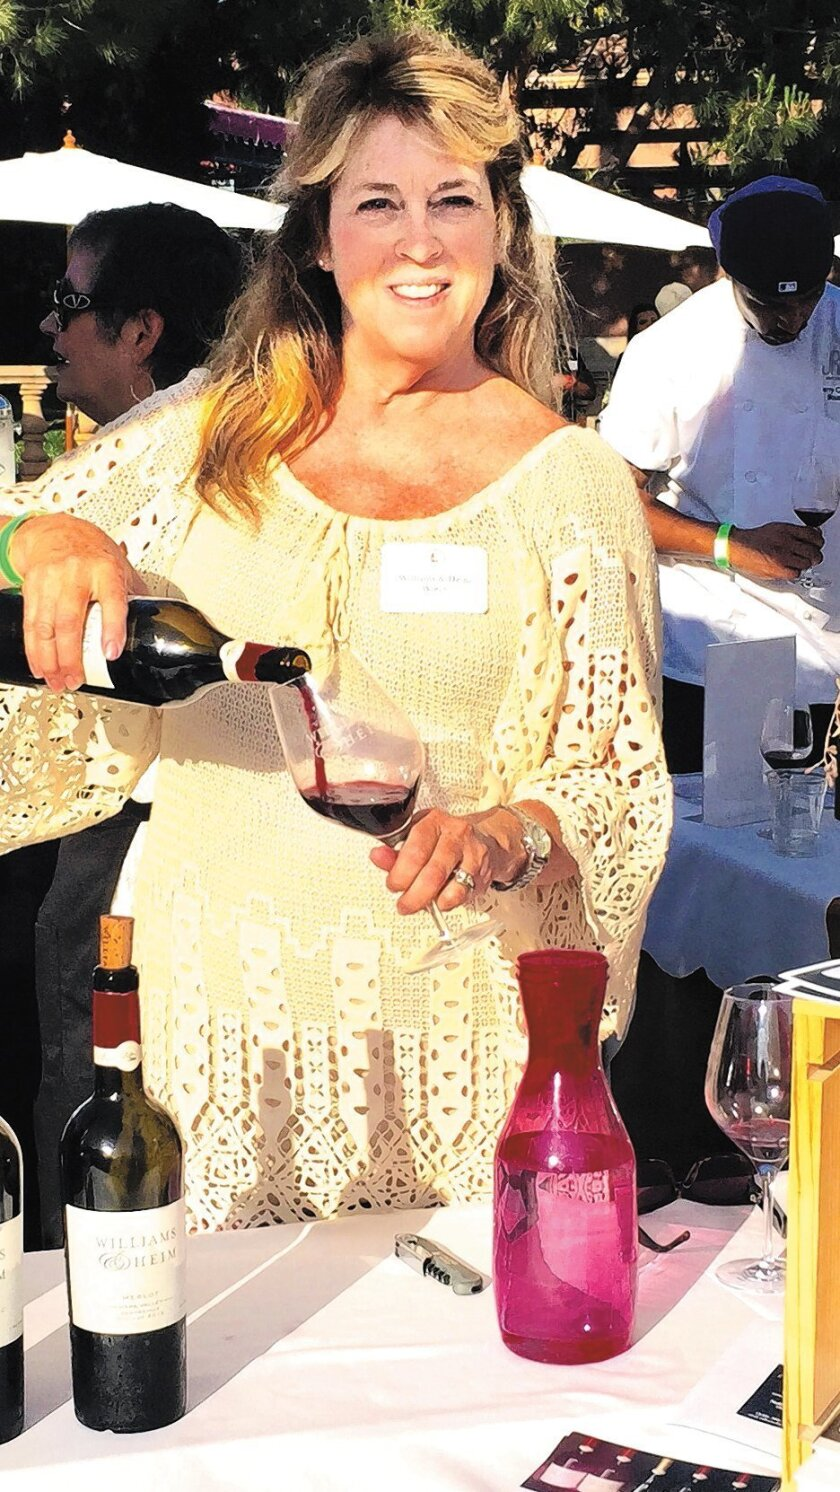 Mare Williams pours 2012 Williams & Heim Triple Entendre, a Bordeaux style blend, at the Wine & Roses event.